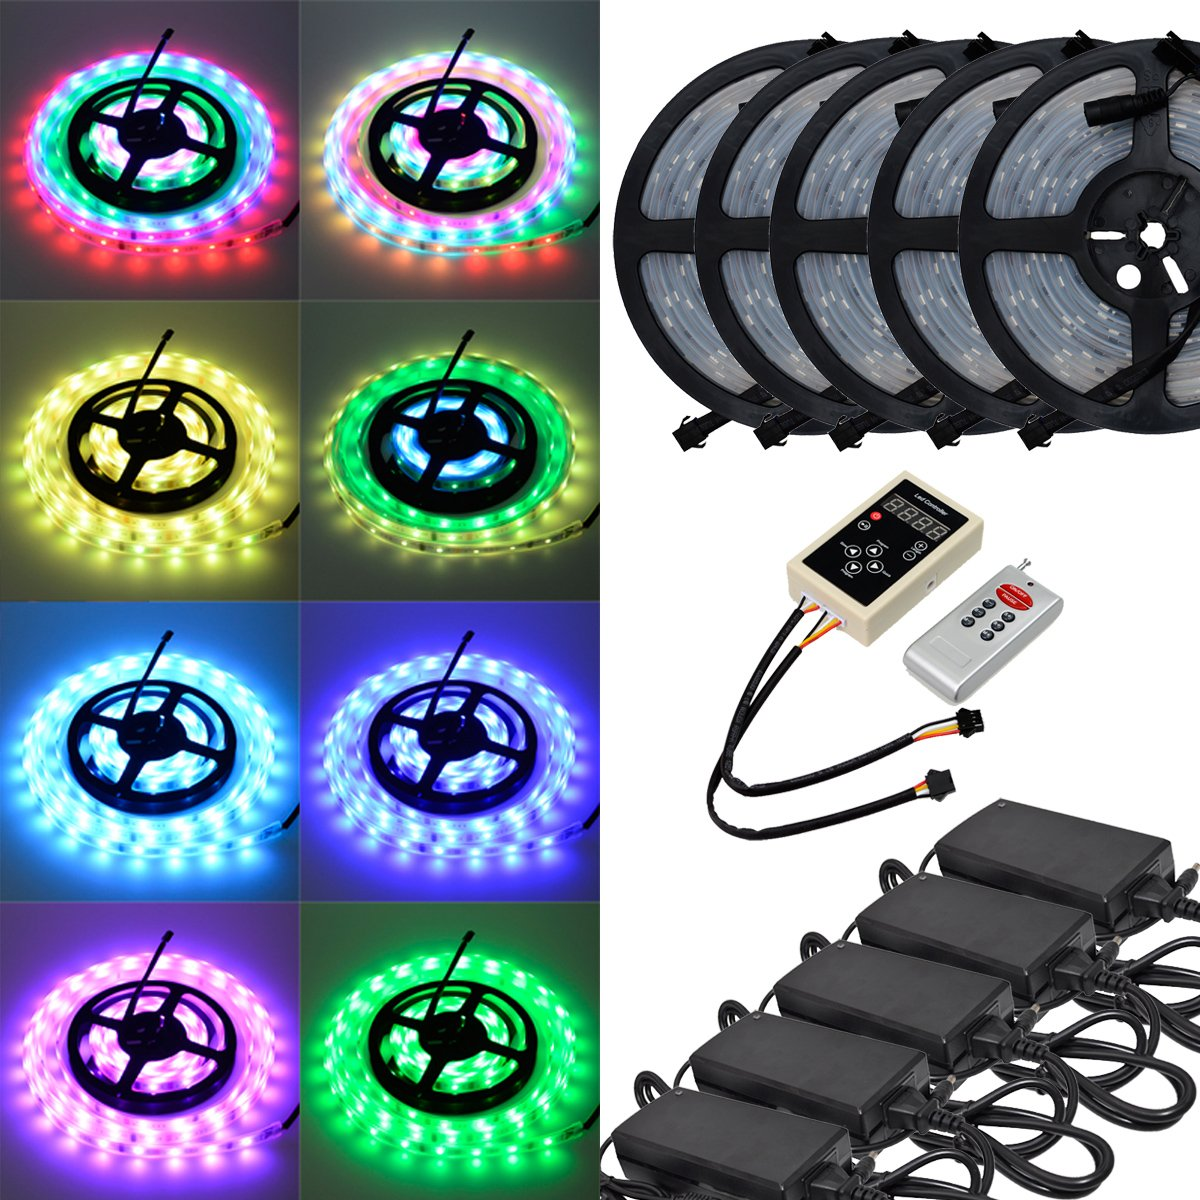 6803 IC RGB Magic Dream Color Multicolors LED Strip Lights Full Set ( Strip Lights + Remote Controller + Power Adapter ) Waterproof IP67 Tube Covered (25m/82ft)